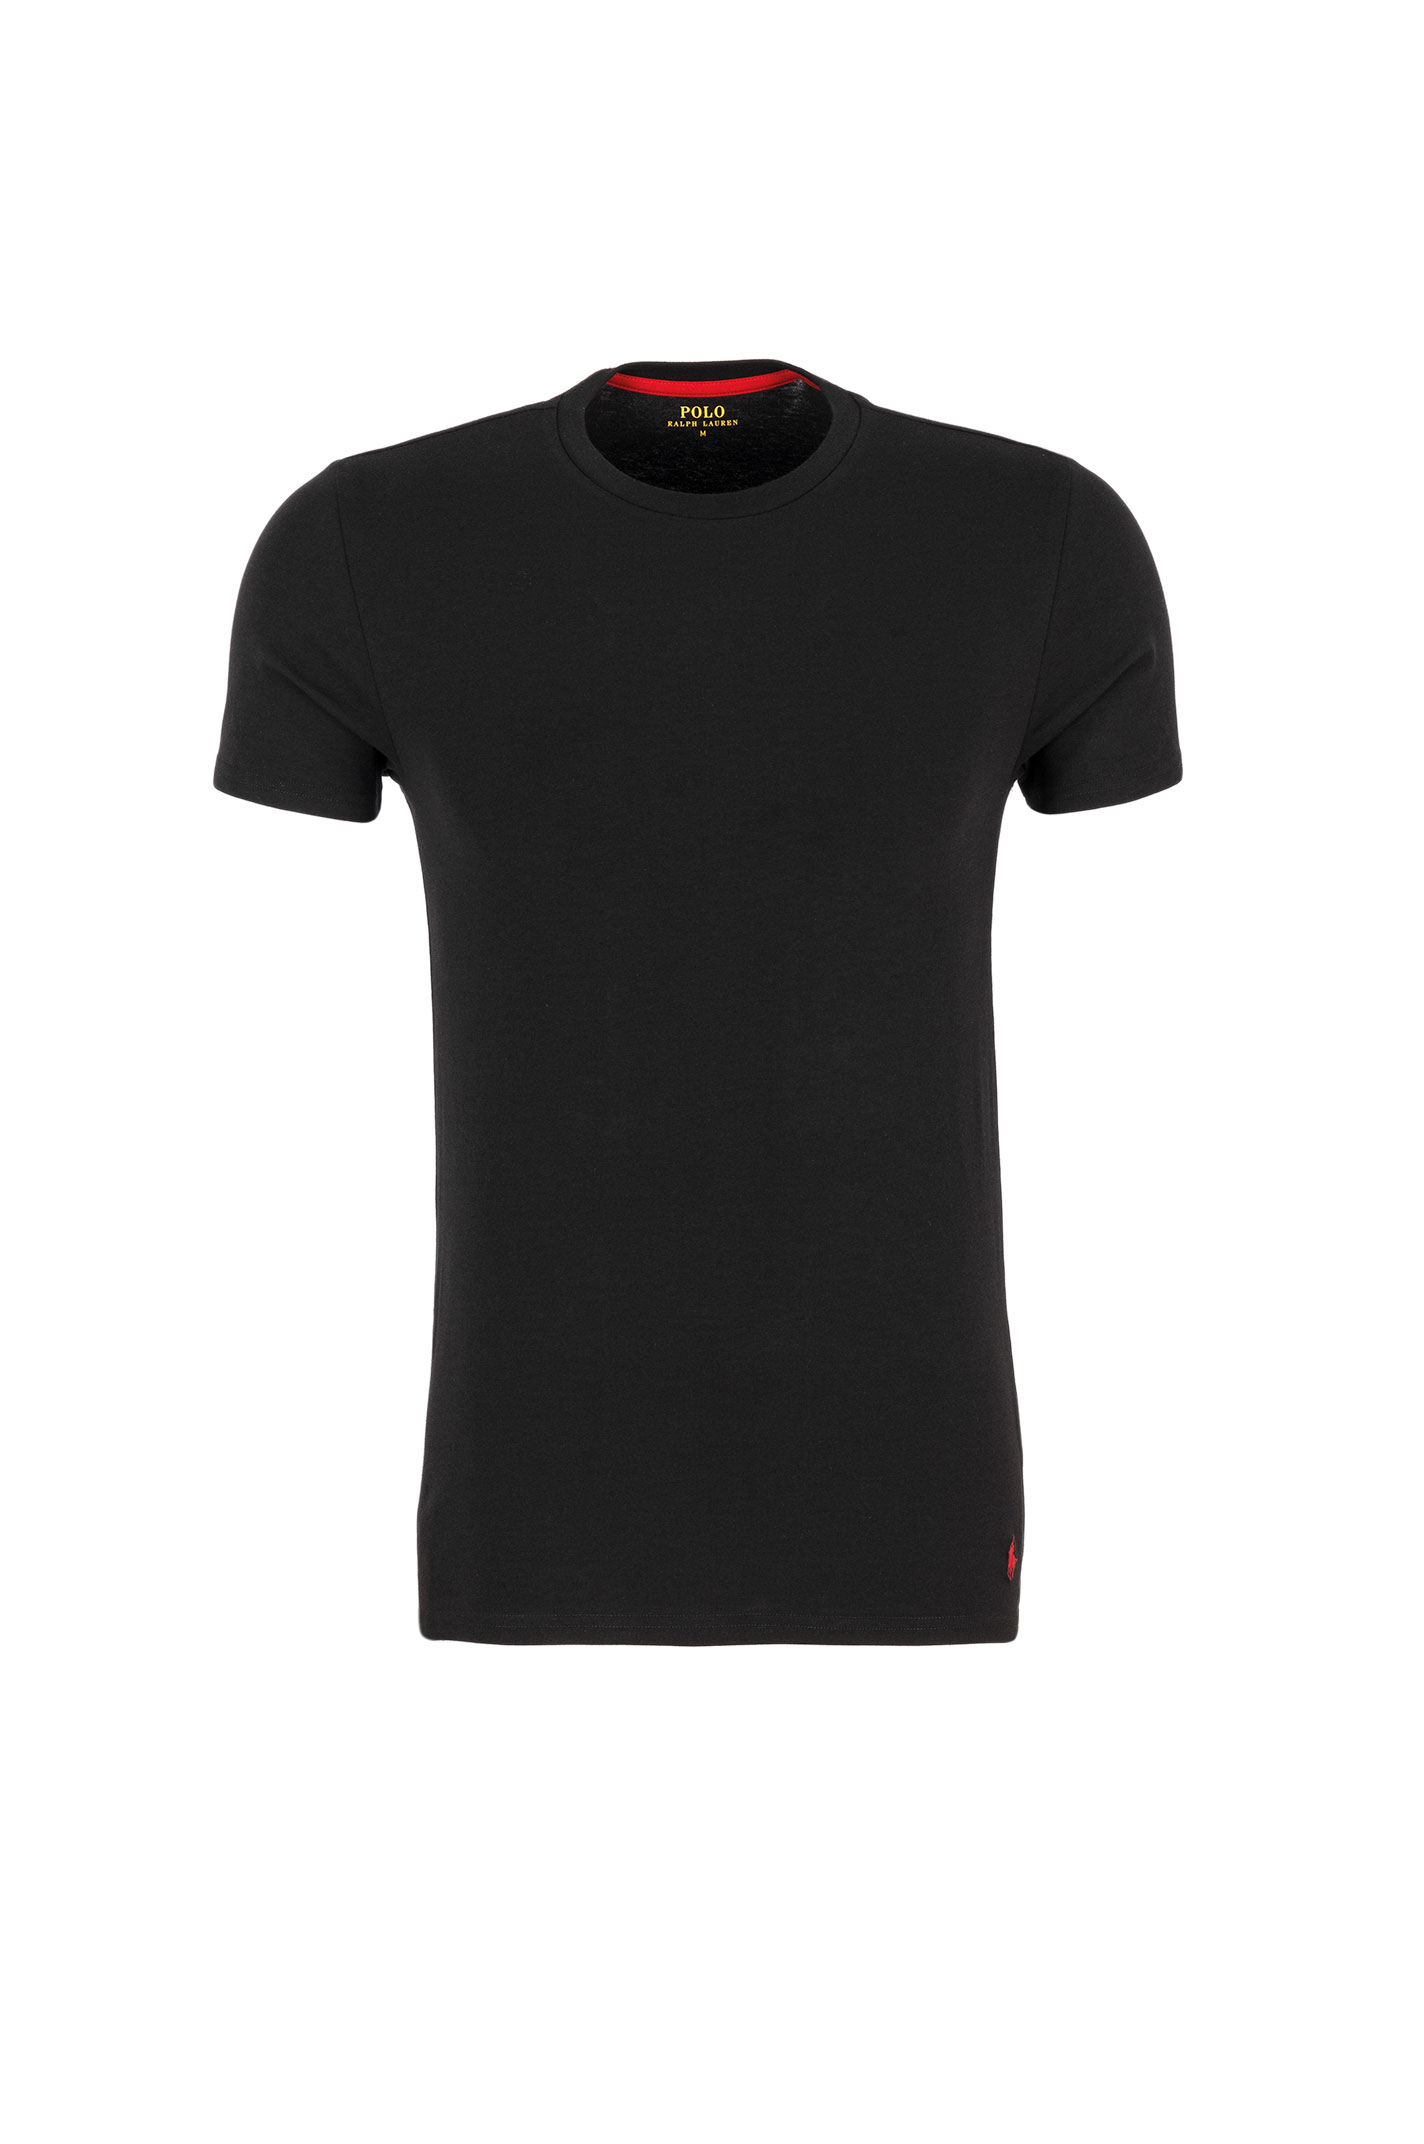 T shirt undershirt polo ralph lauren black for Polo shirt with undershirt